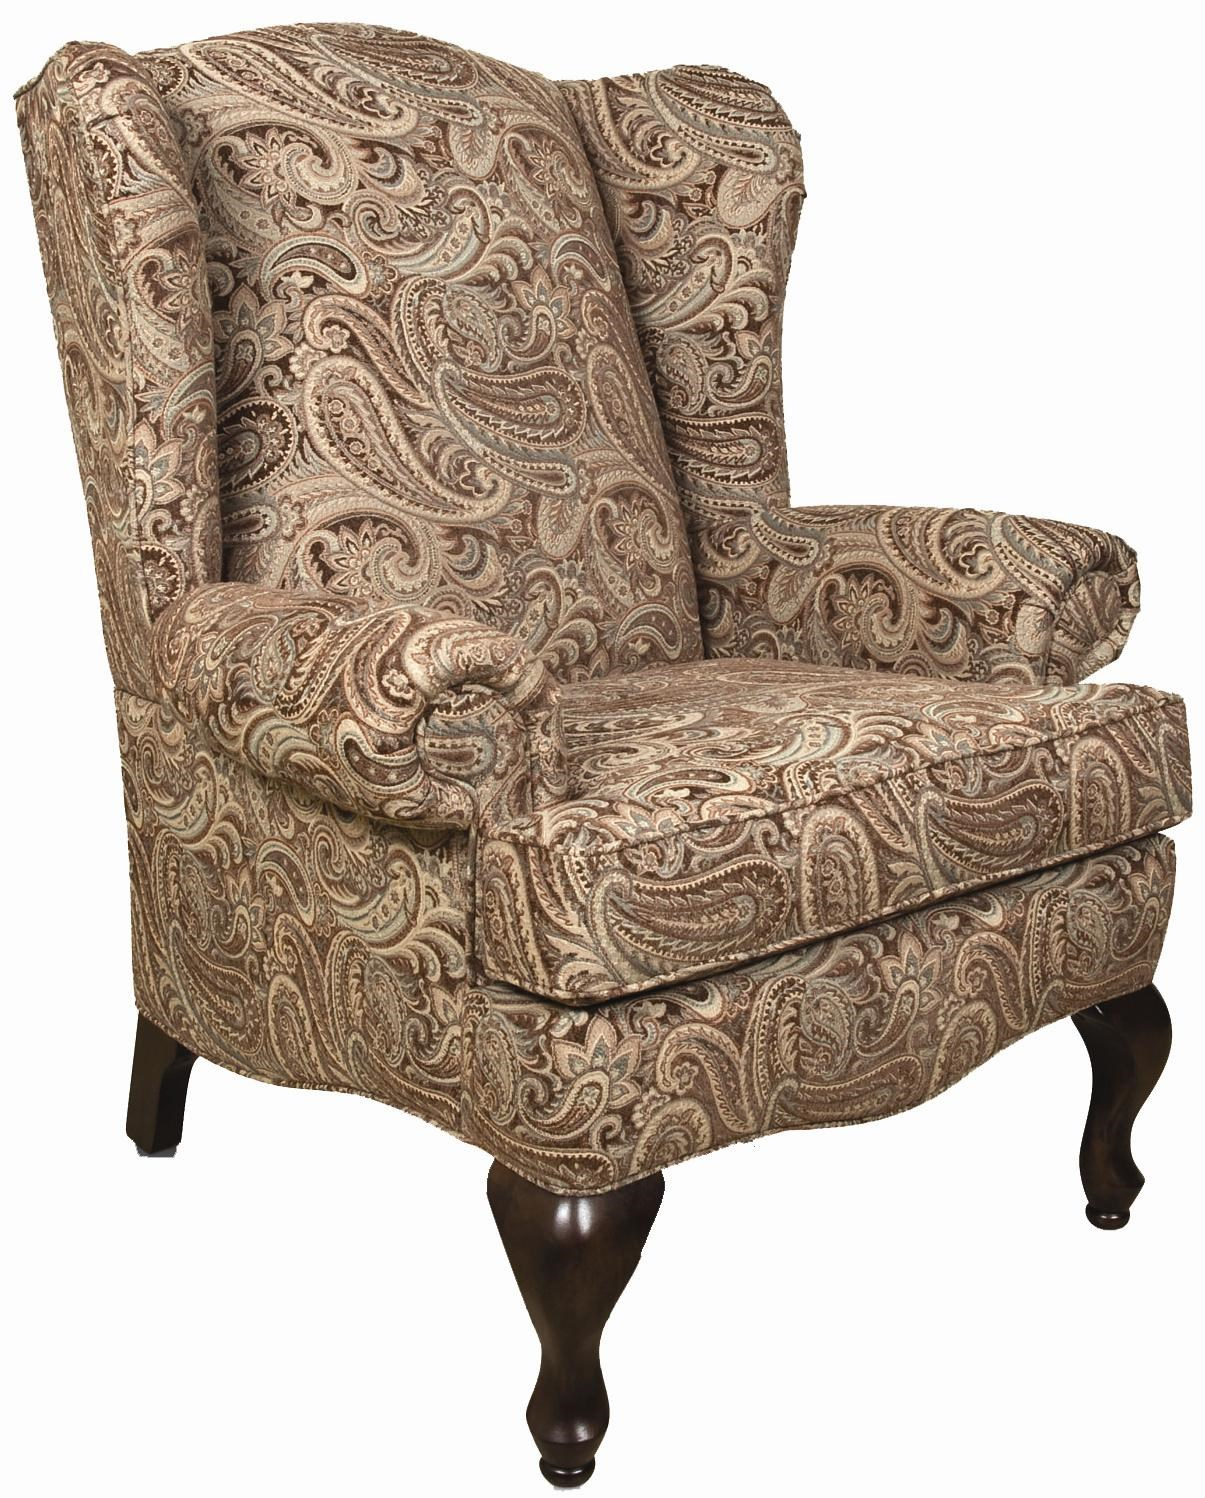 England ColleenChair; England ColleenChair  sc 1 st  Colderu0027s & England Colleen Upholstered Wing Chair with Cabriole Legs | Colderu0027s ...